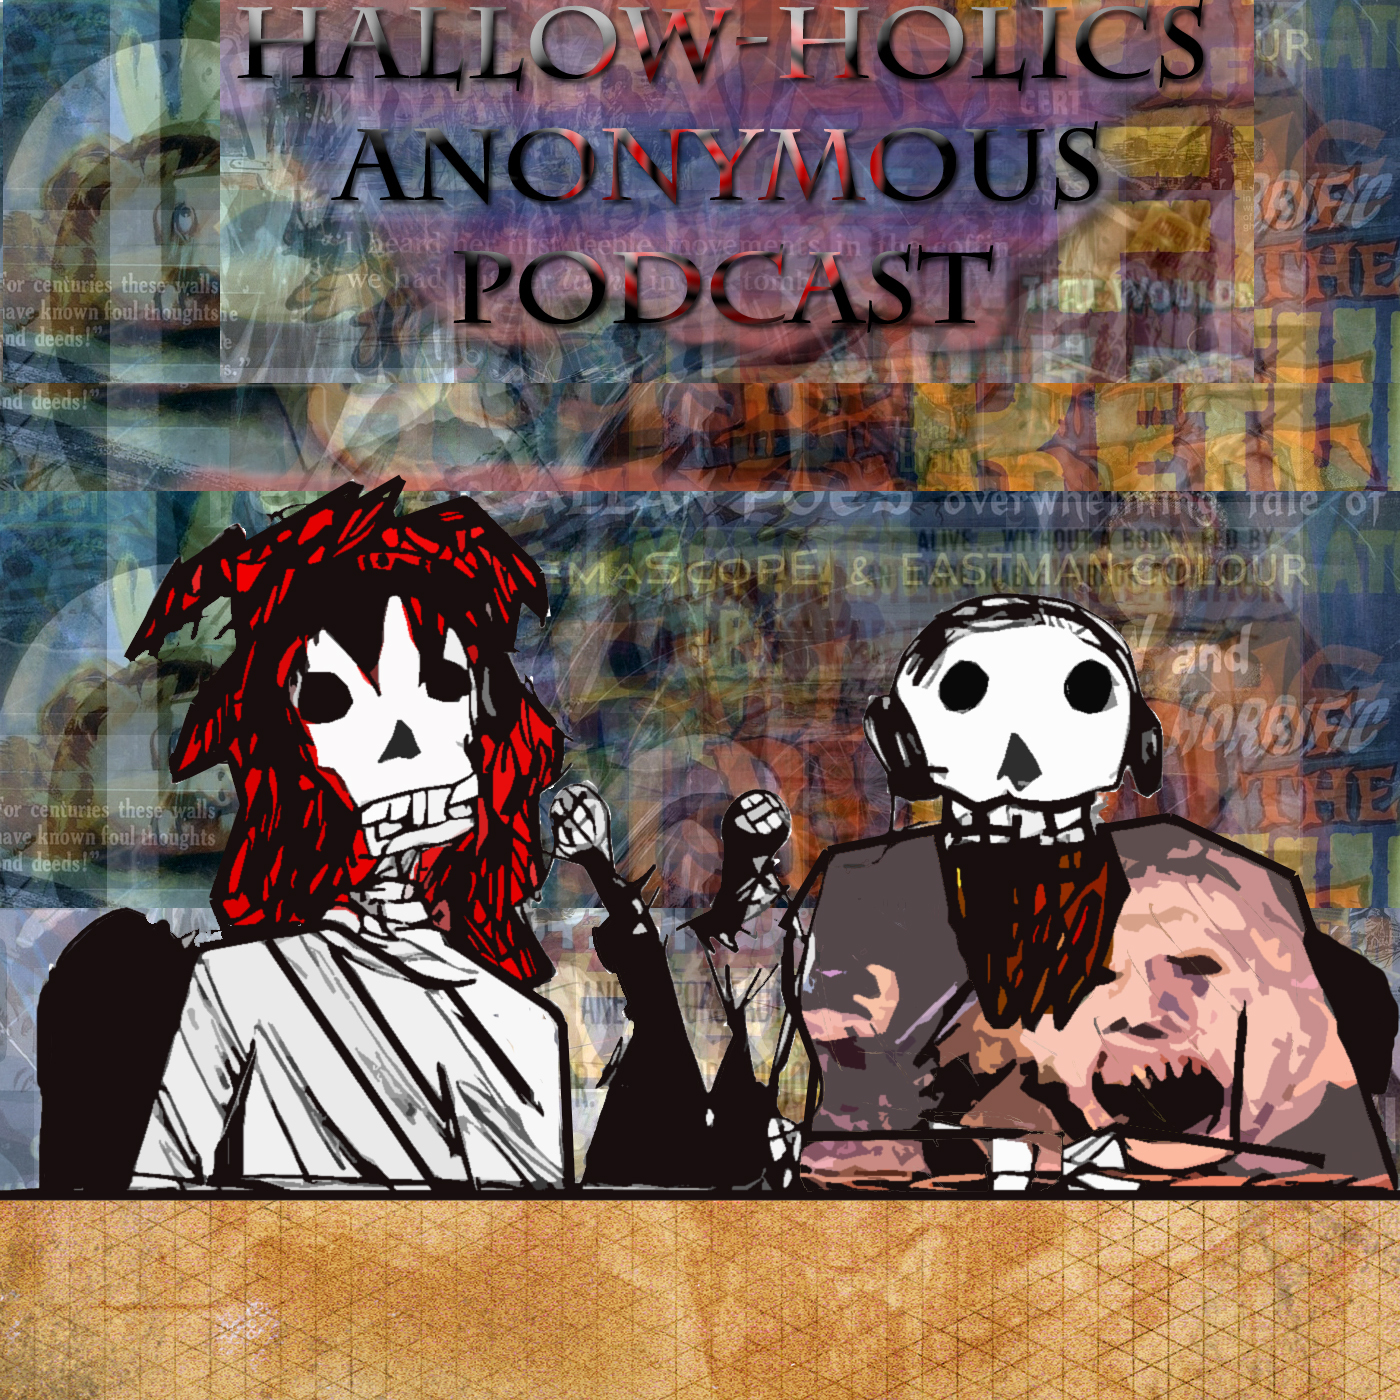 File:Hallow-Holics Anonymous Podcast Logo.jpg